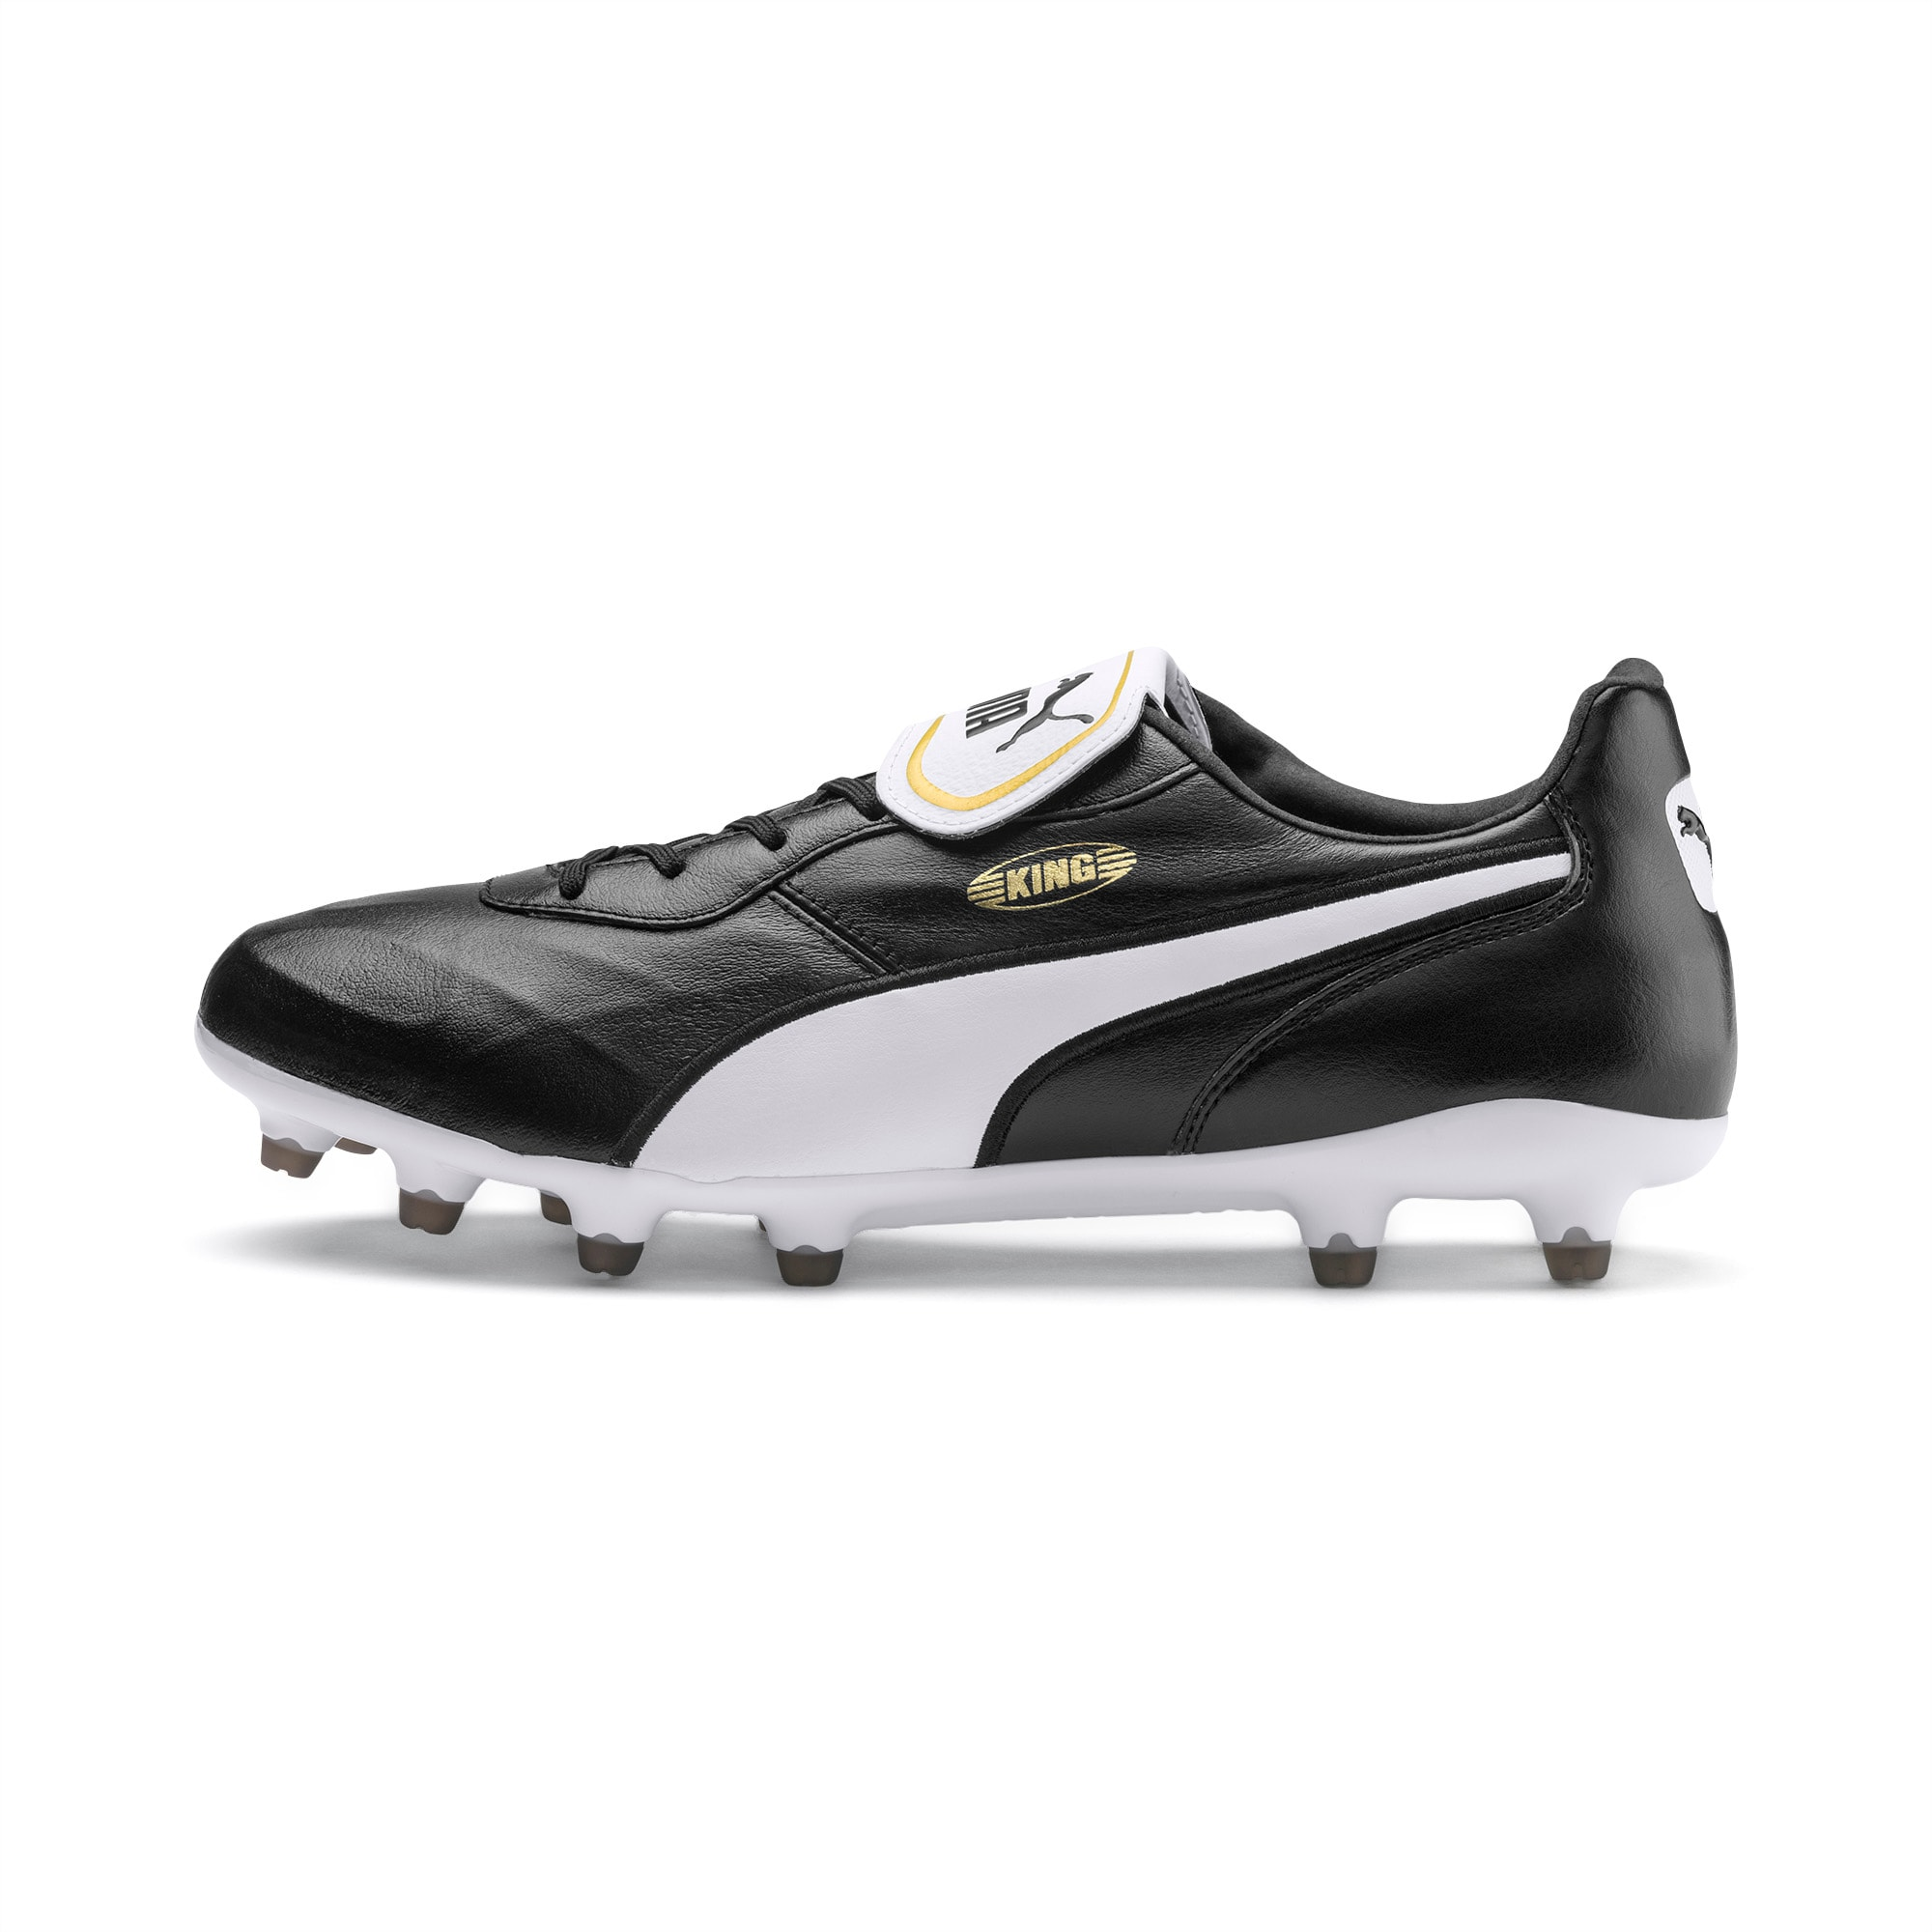 King Top FG Soccer Cleats